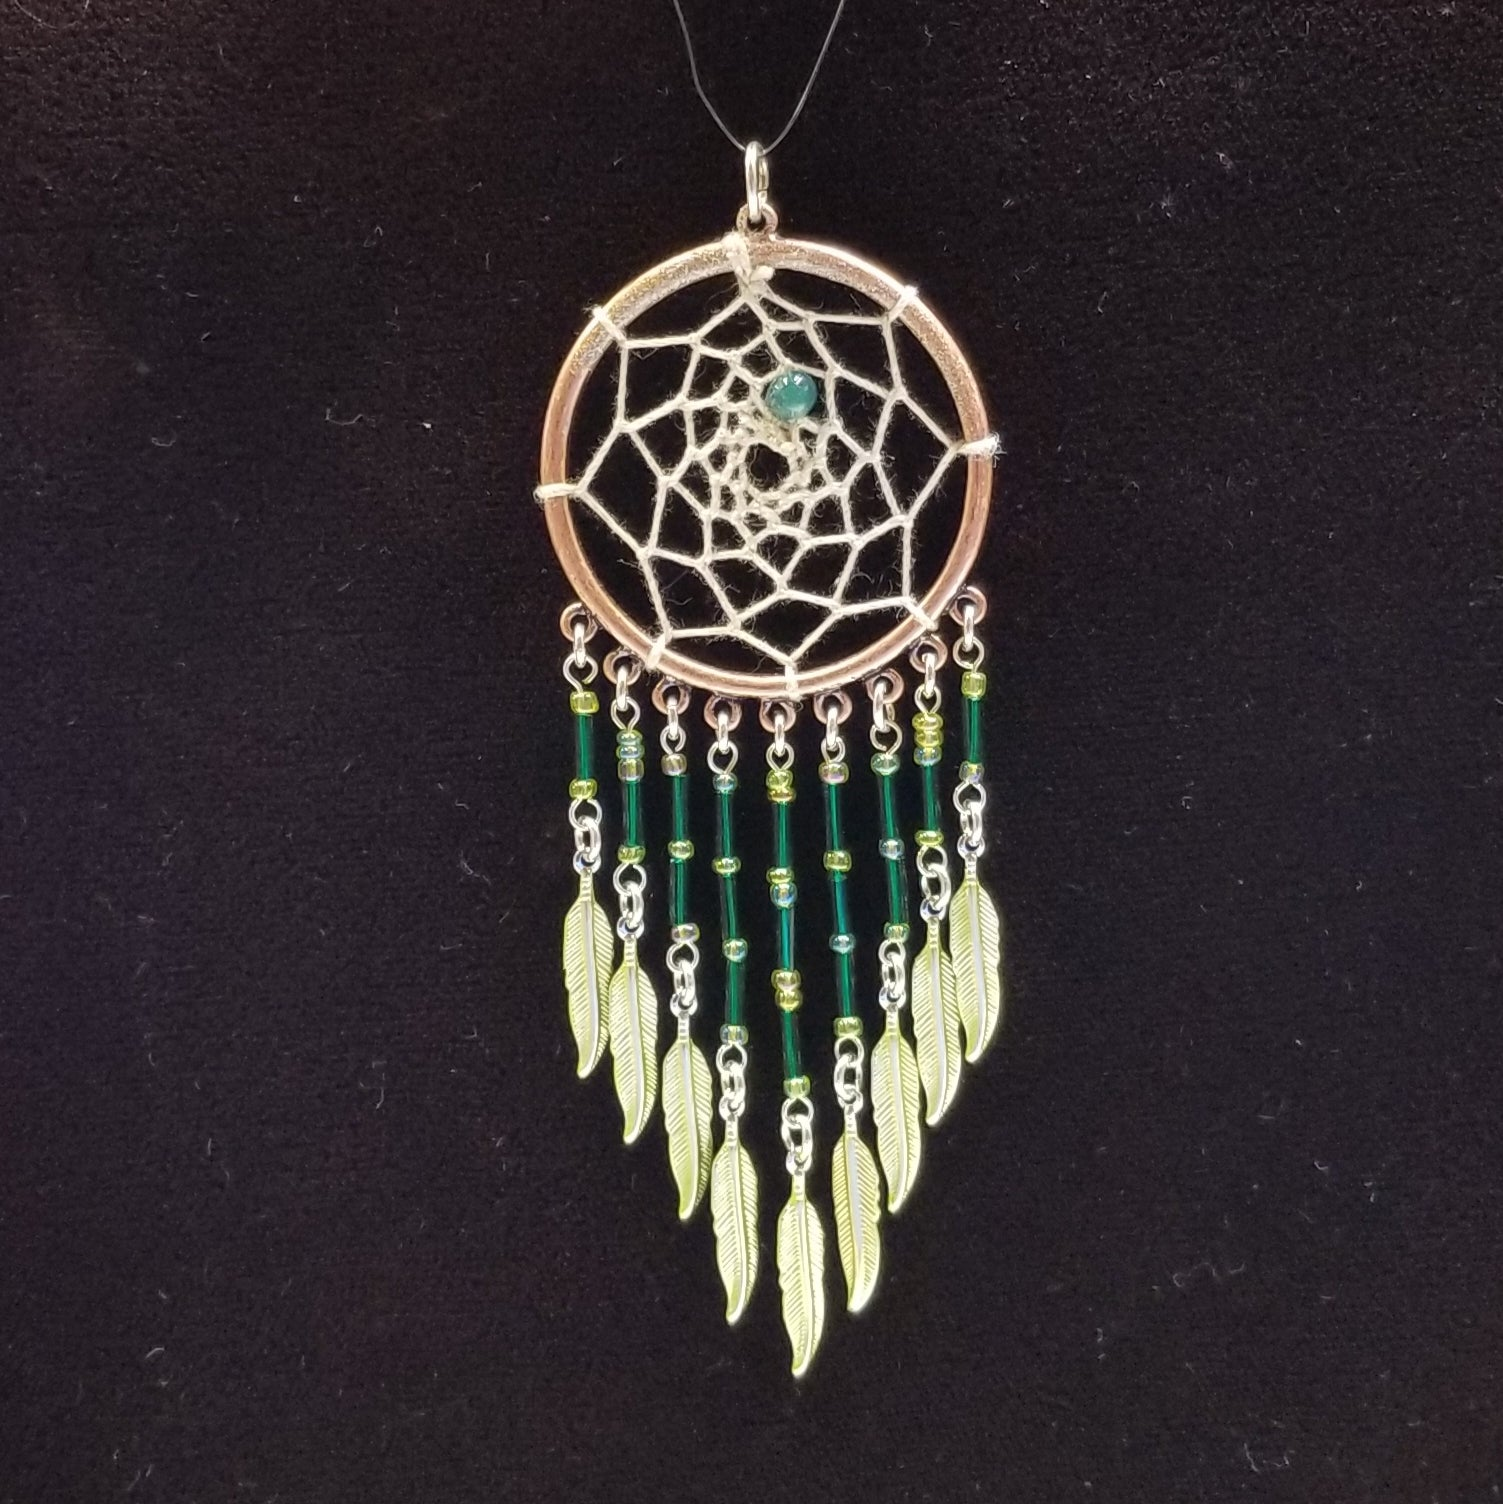 WW151 Dream Catcher Pendant - Trinkets & Things Handmade with Aloha